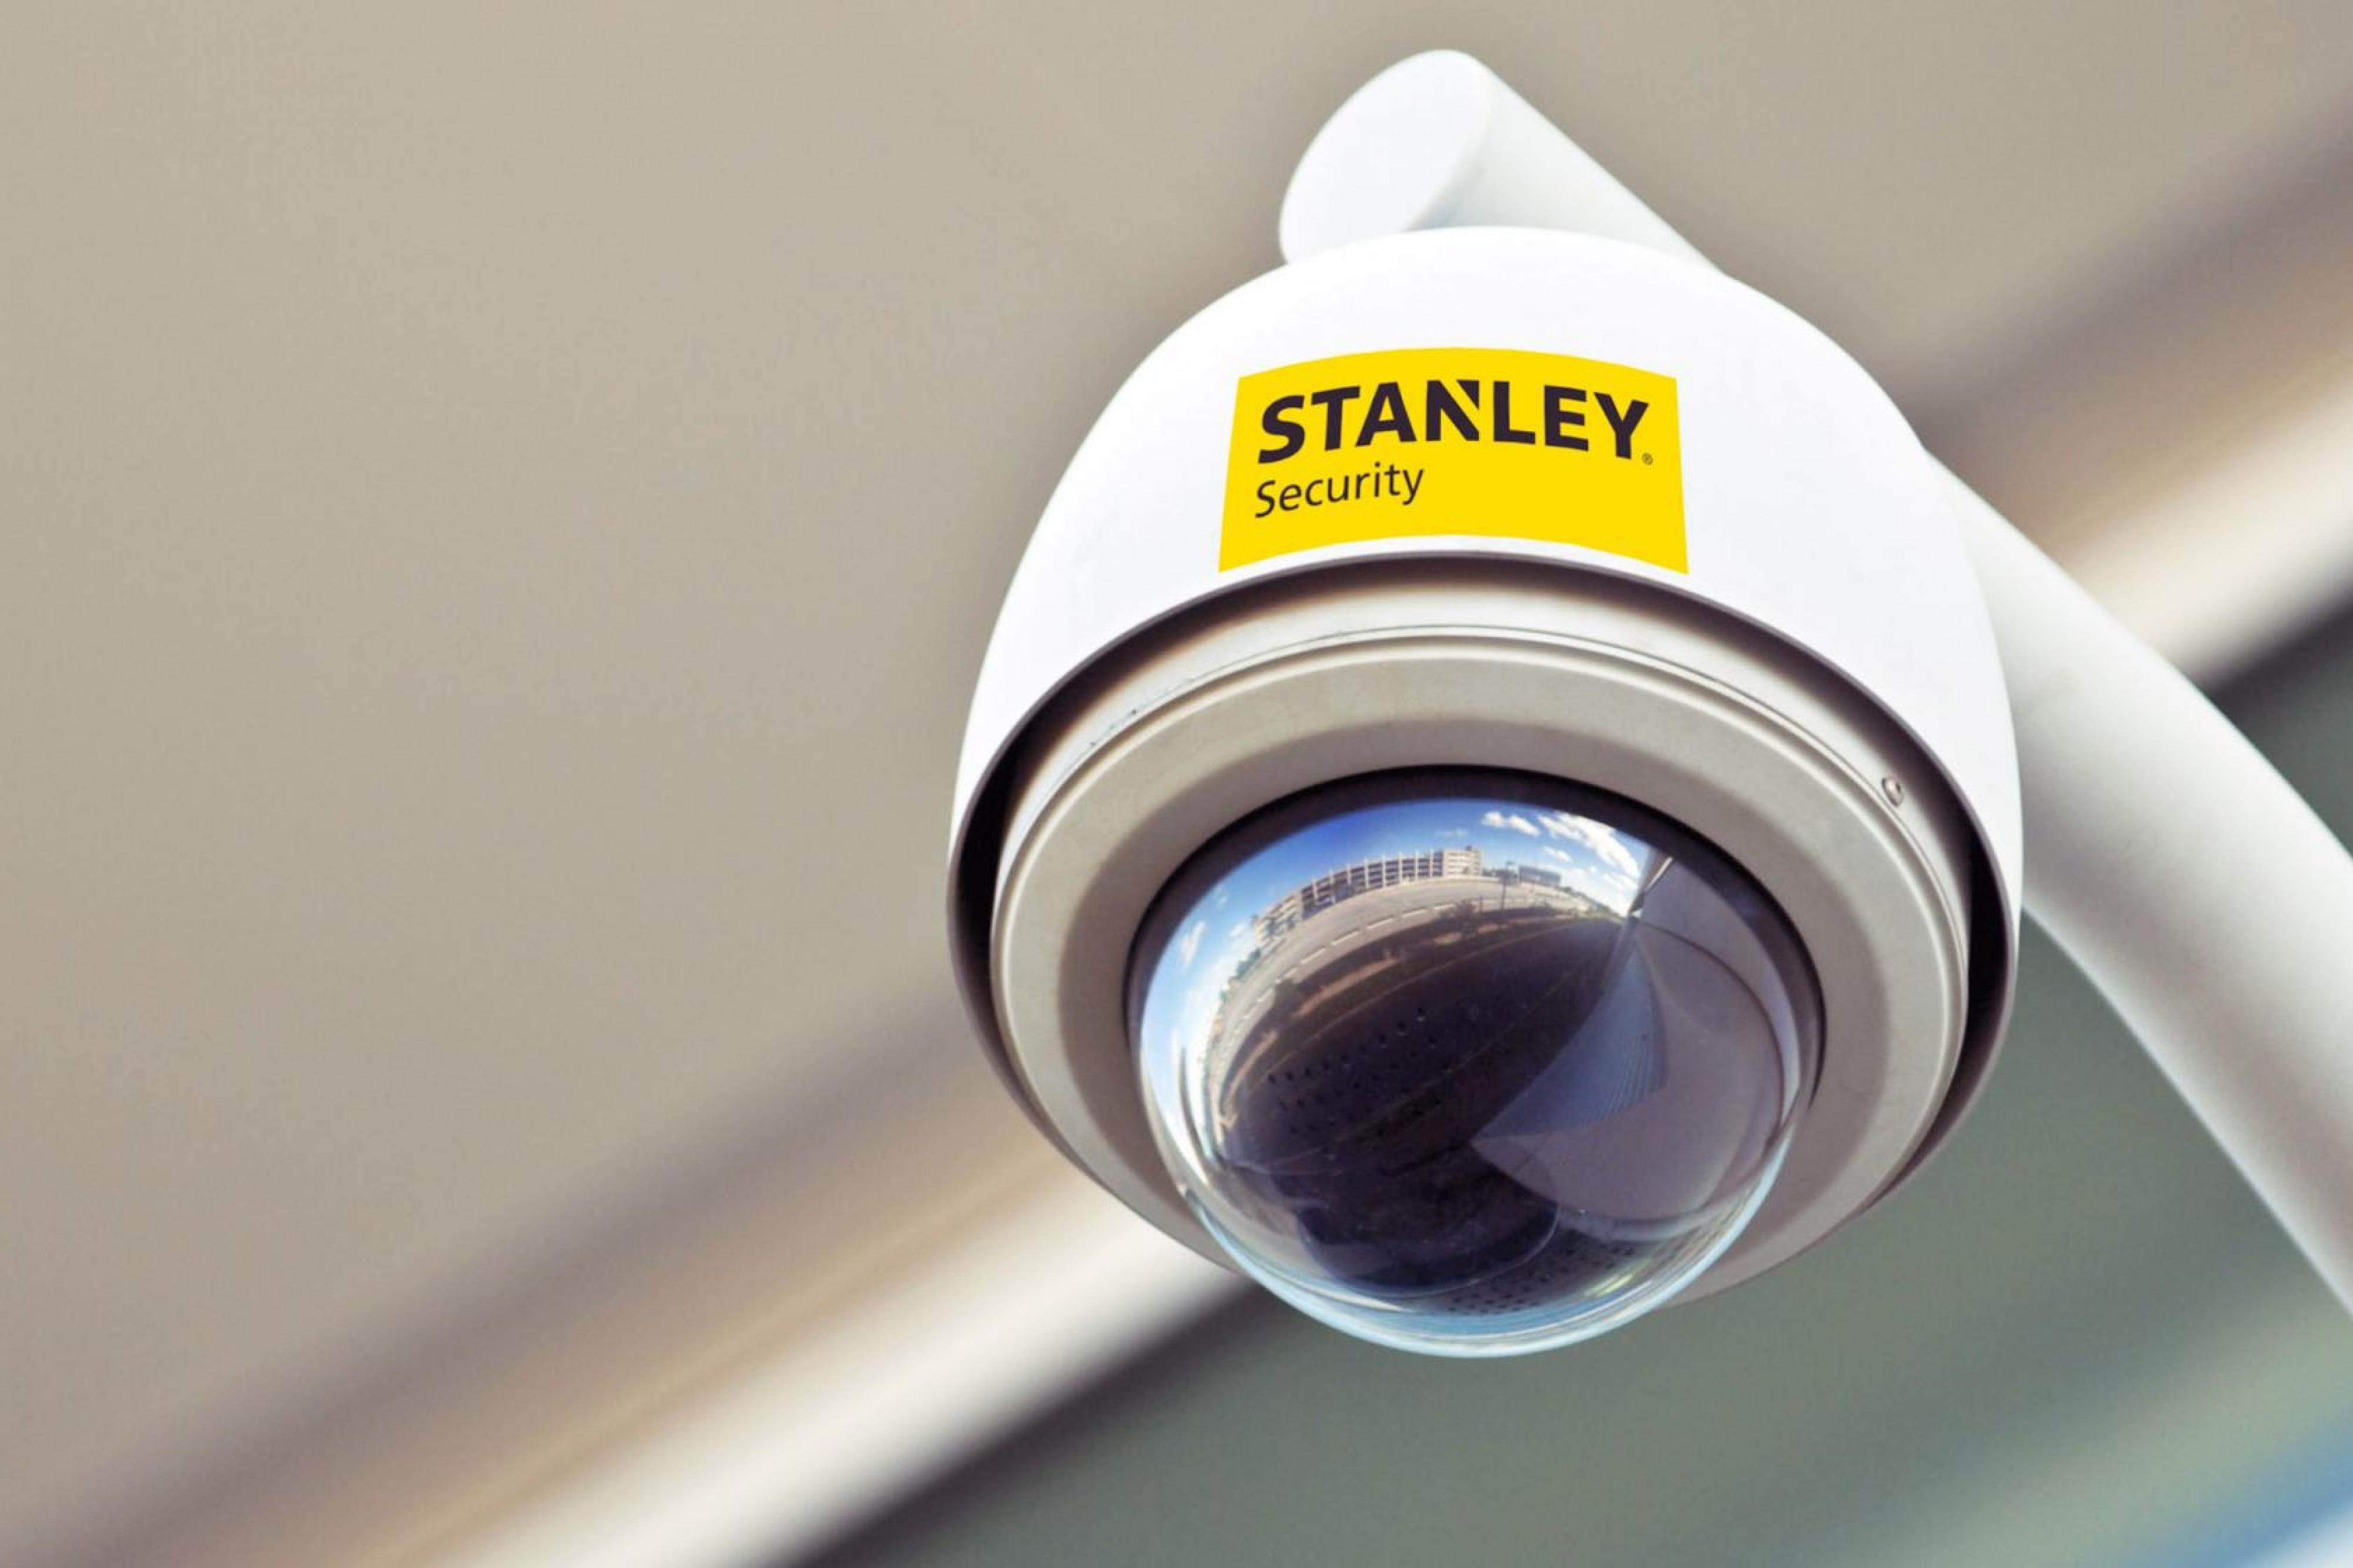 Close up of Stanley Security dome camera